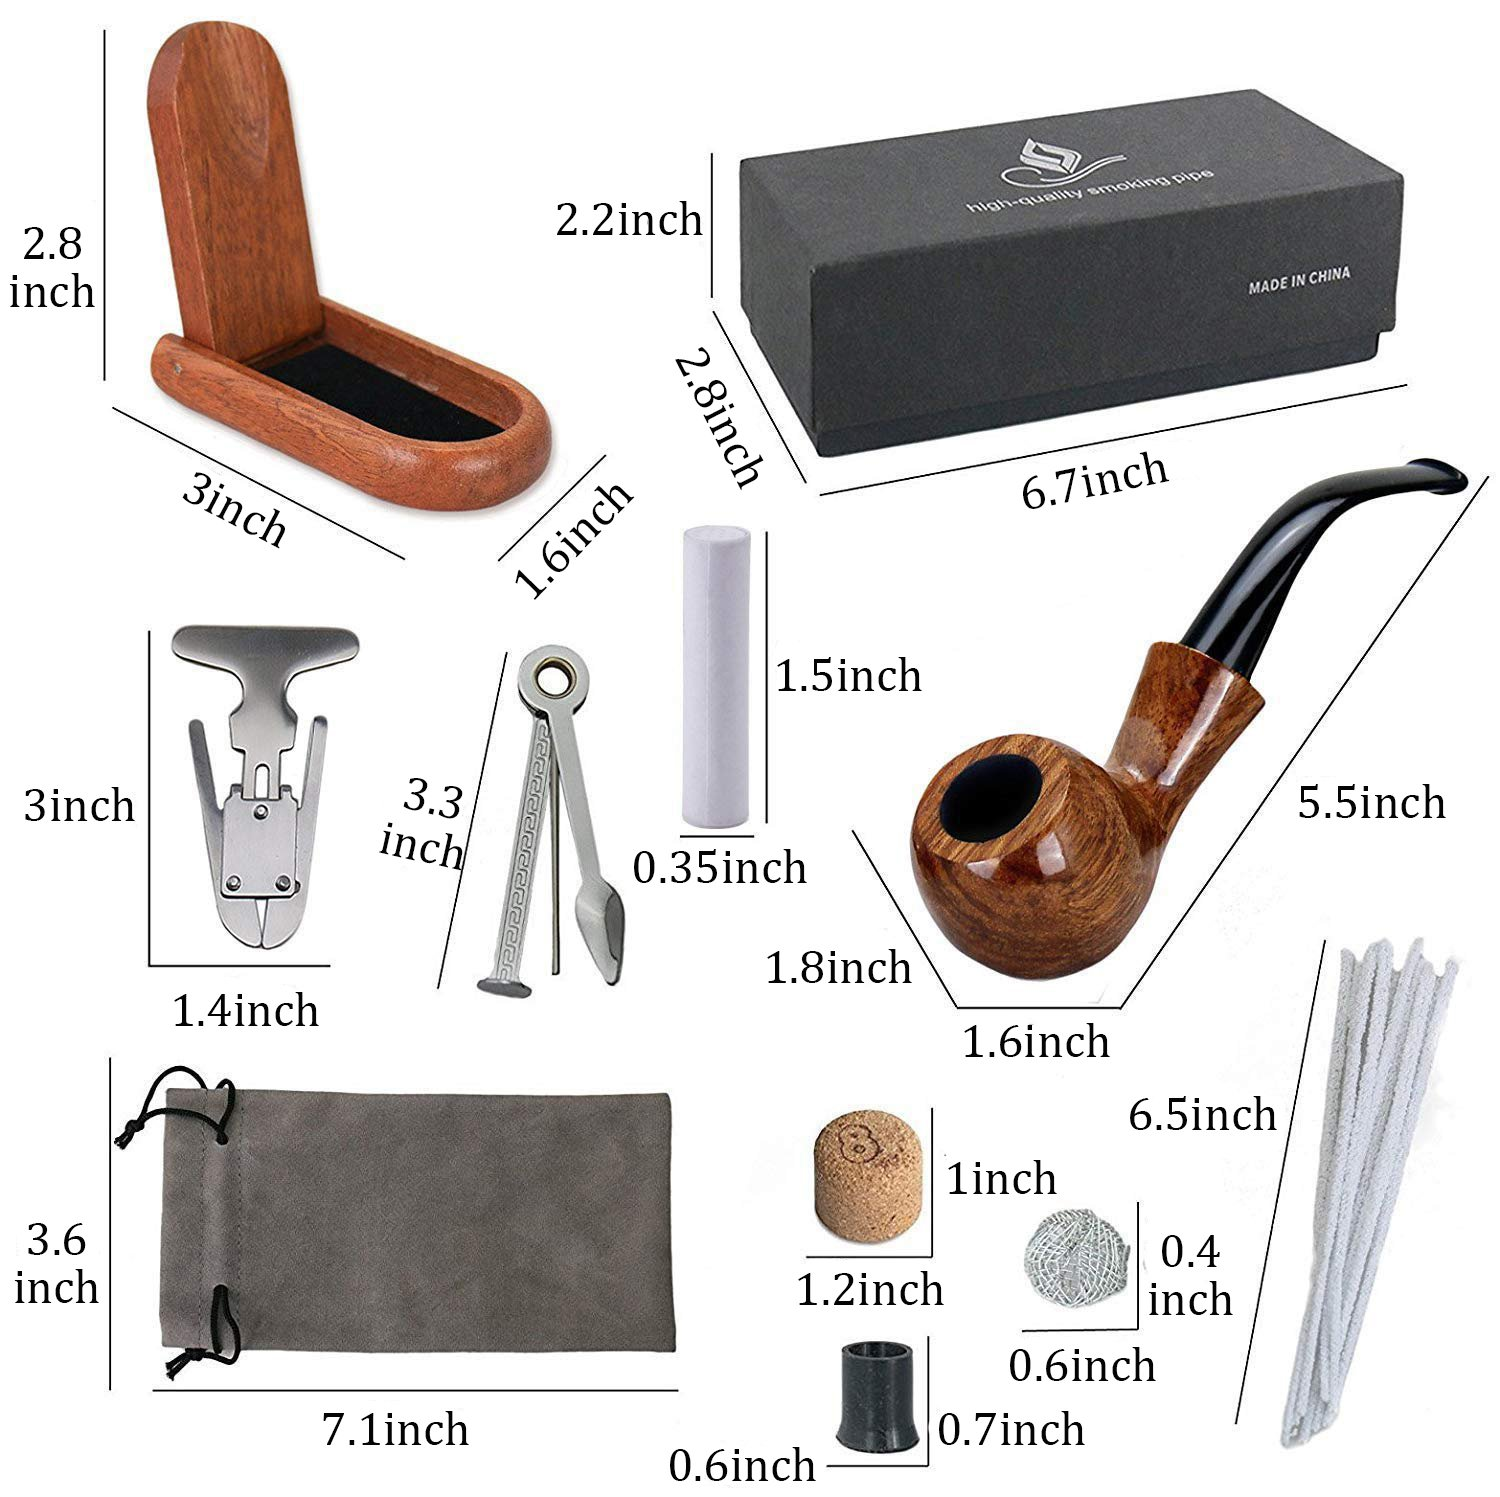 Joyoldelf Rosewood Tobacco Pipe Set with Wooden Stand, Reamer & 3-in-1 Pipe Scraper, 20 Pipe Cleaners & Pipe Filters, 2 Pipe Bits & Metal Balls, Cork Knocker, Pipe Pouch, Bonus a Gift Box XX013US